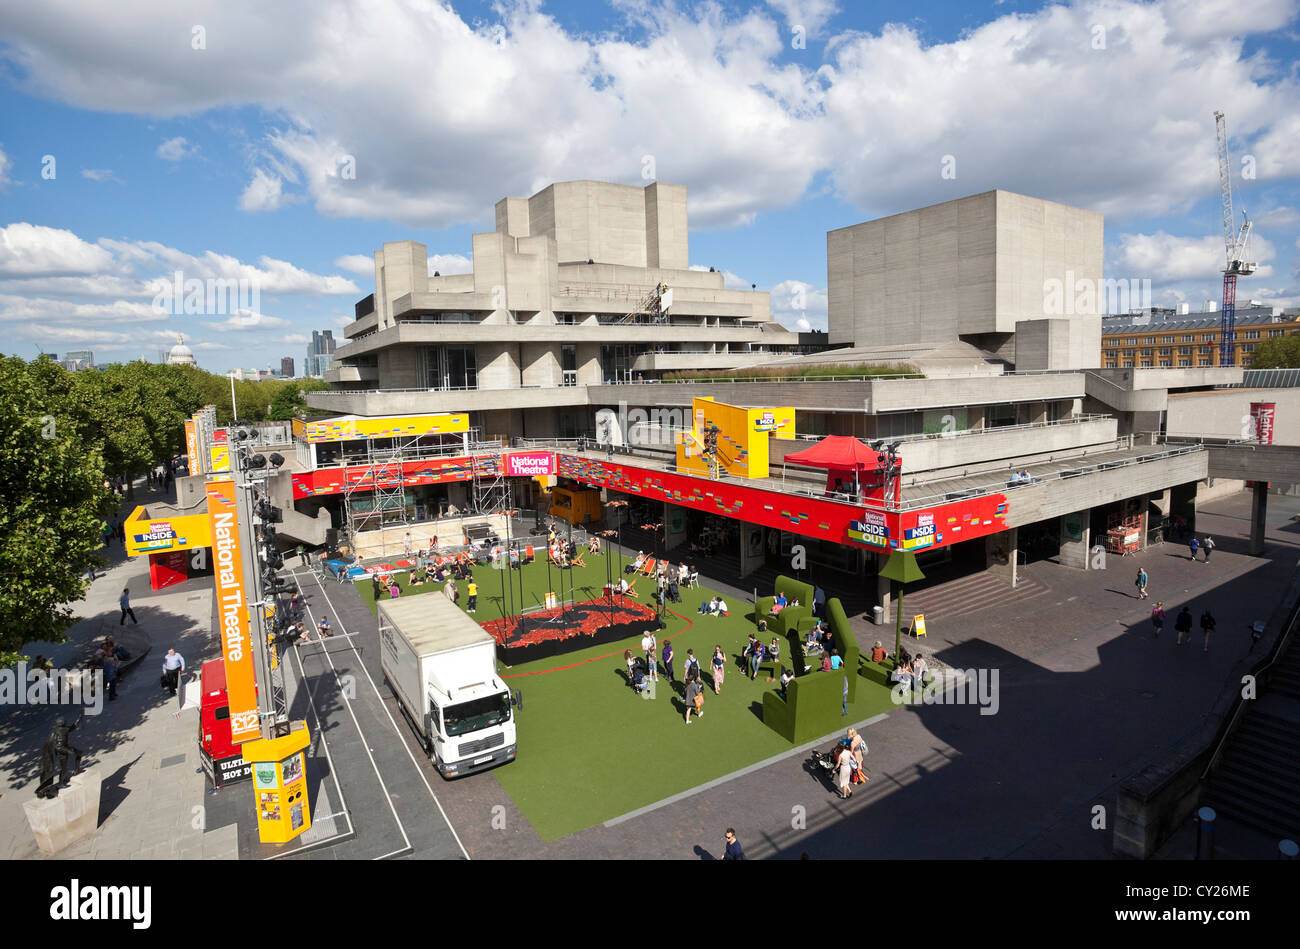 The National Theatre bulding, South Bank, London, England, UK - Stock Image